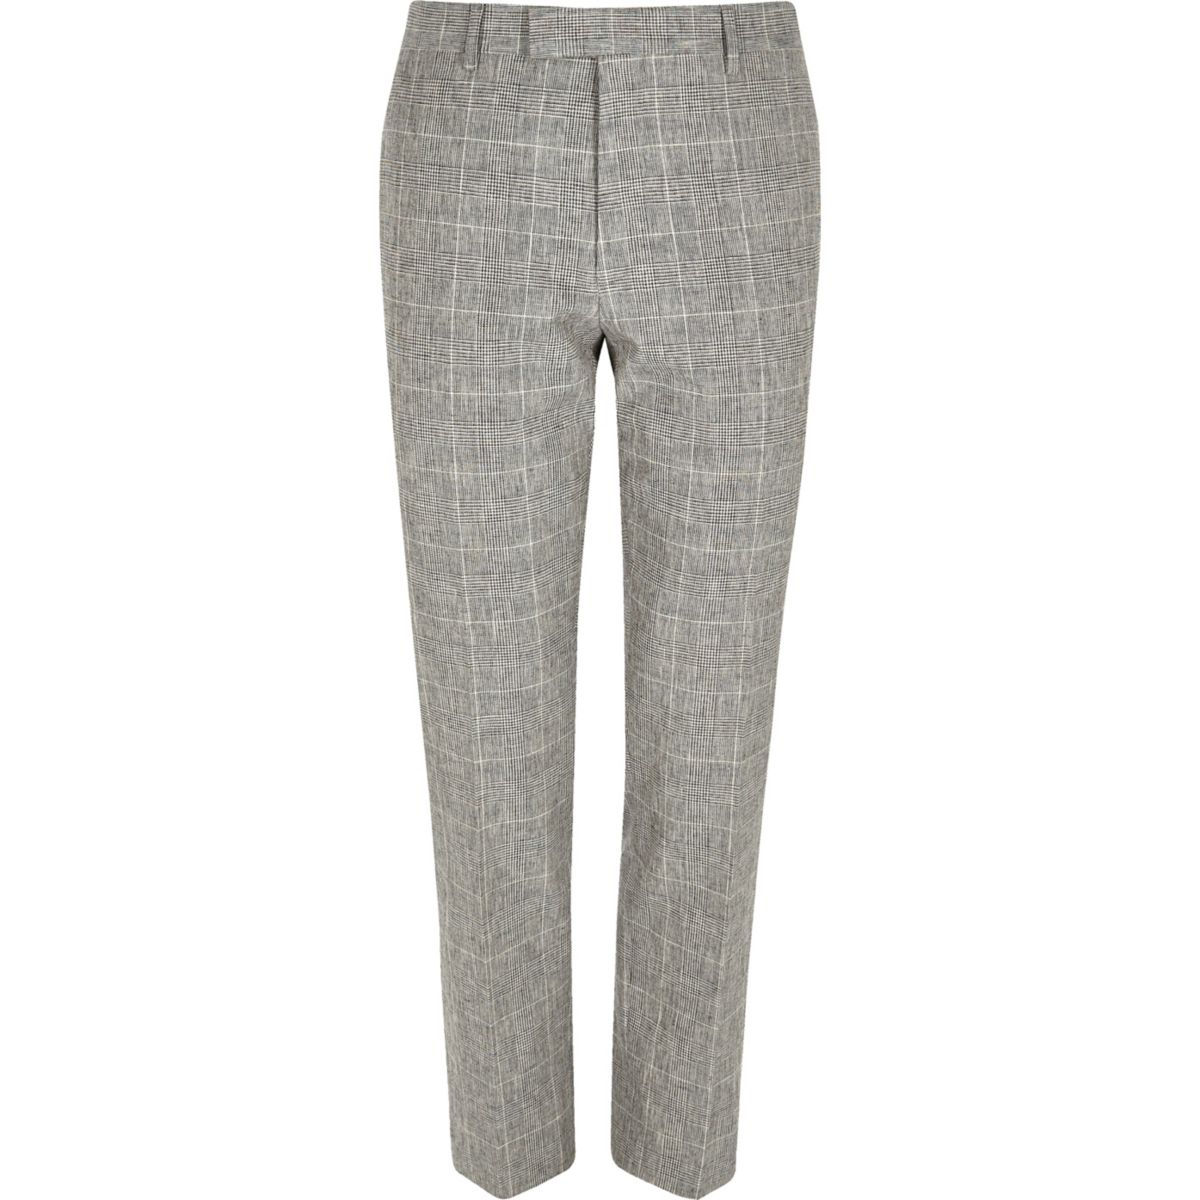 Grey check print skinny fit suit pants